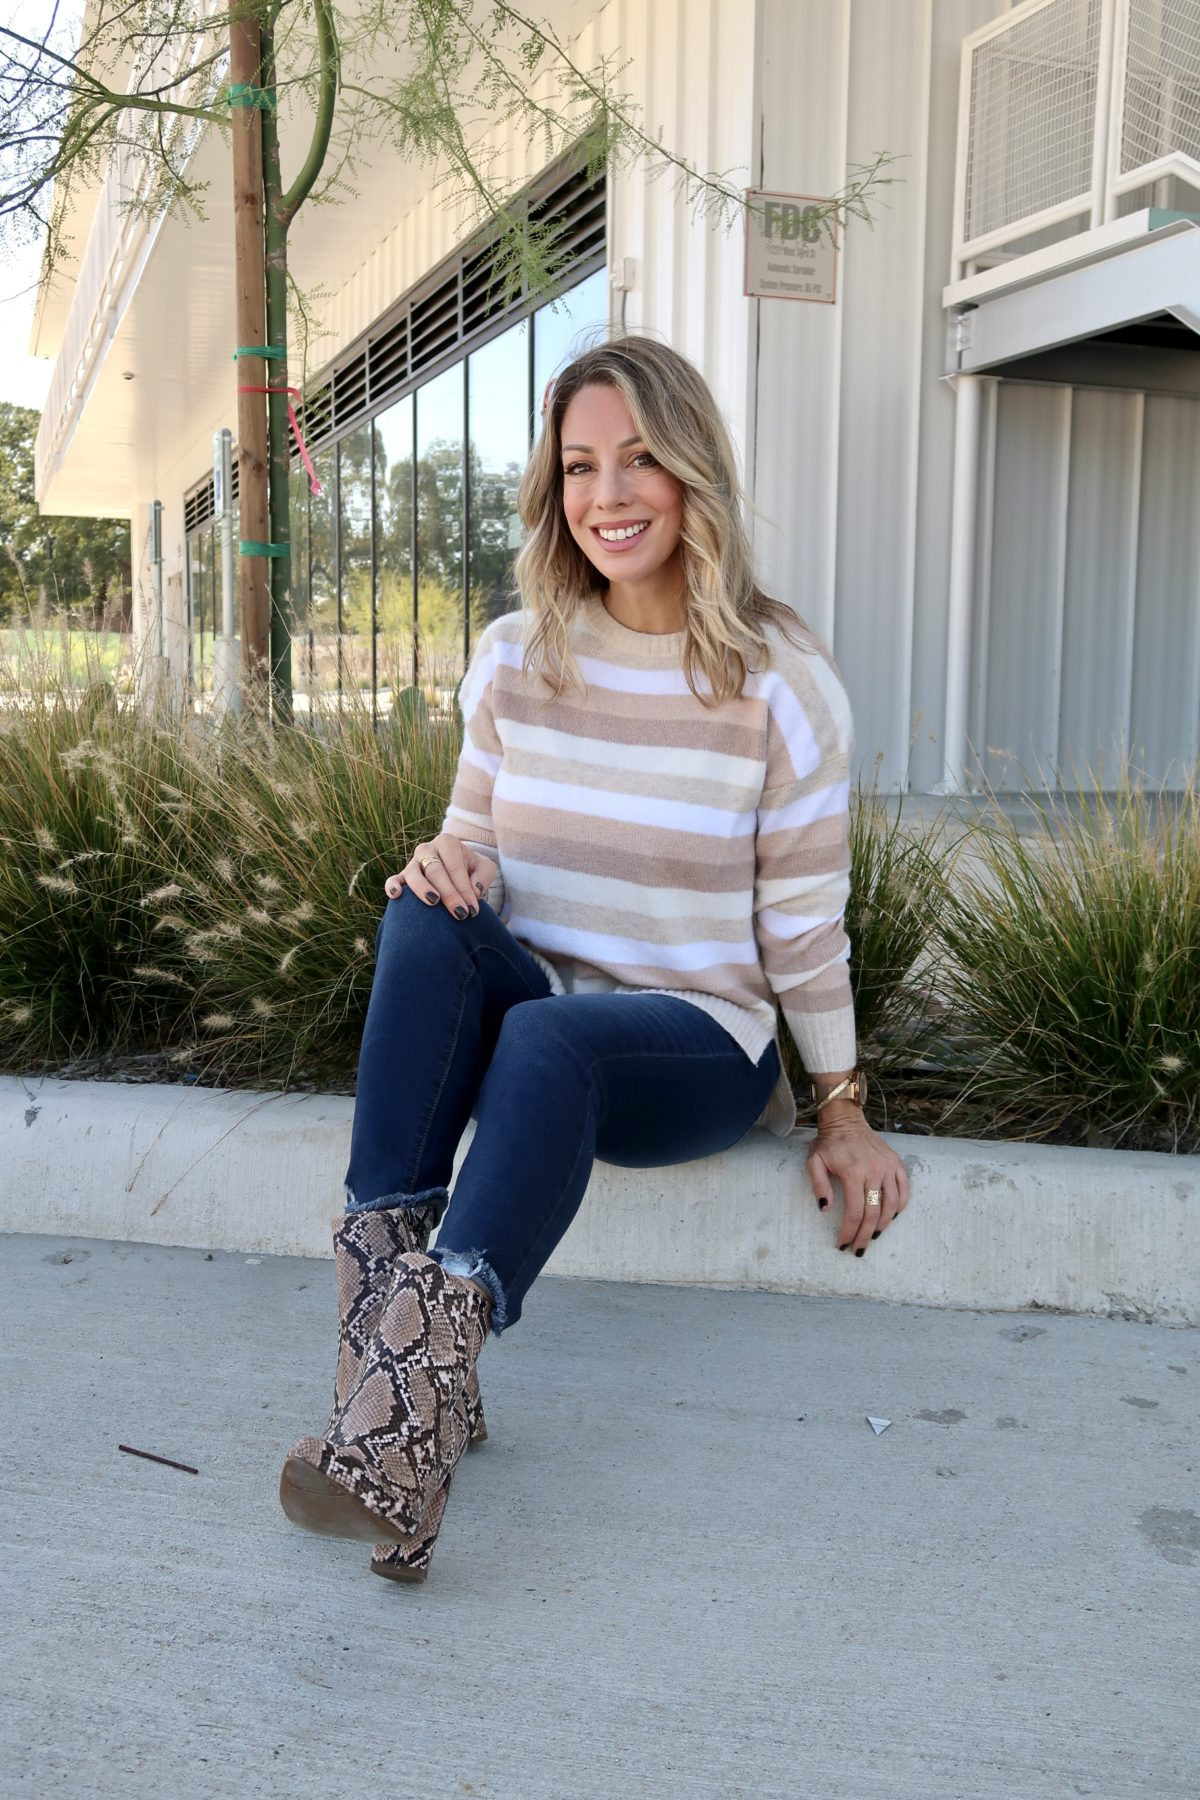 Walmart Fashion Finds Stripe Sweater, Jeans, Snakeskin Booties